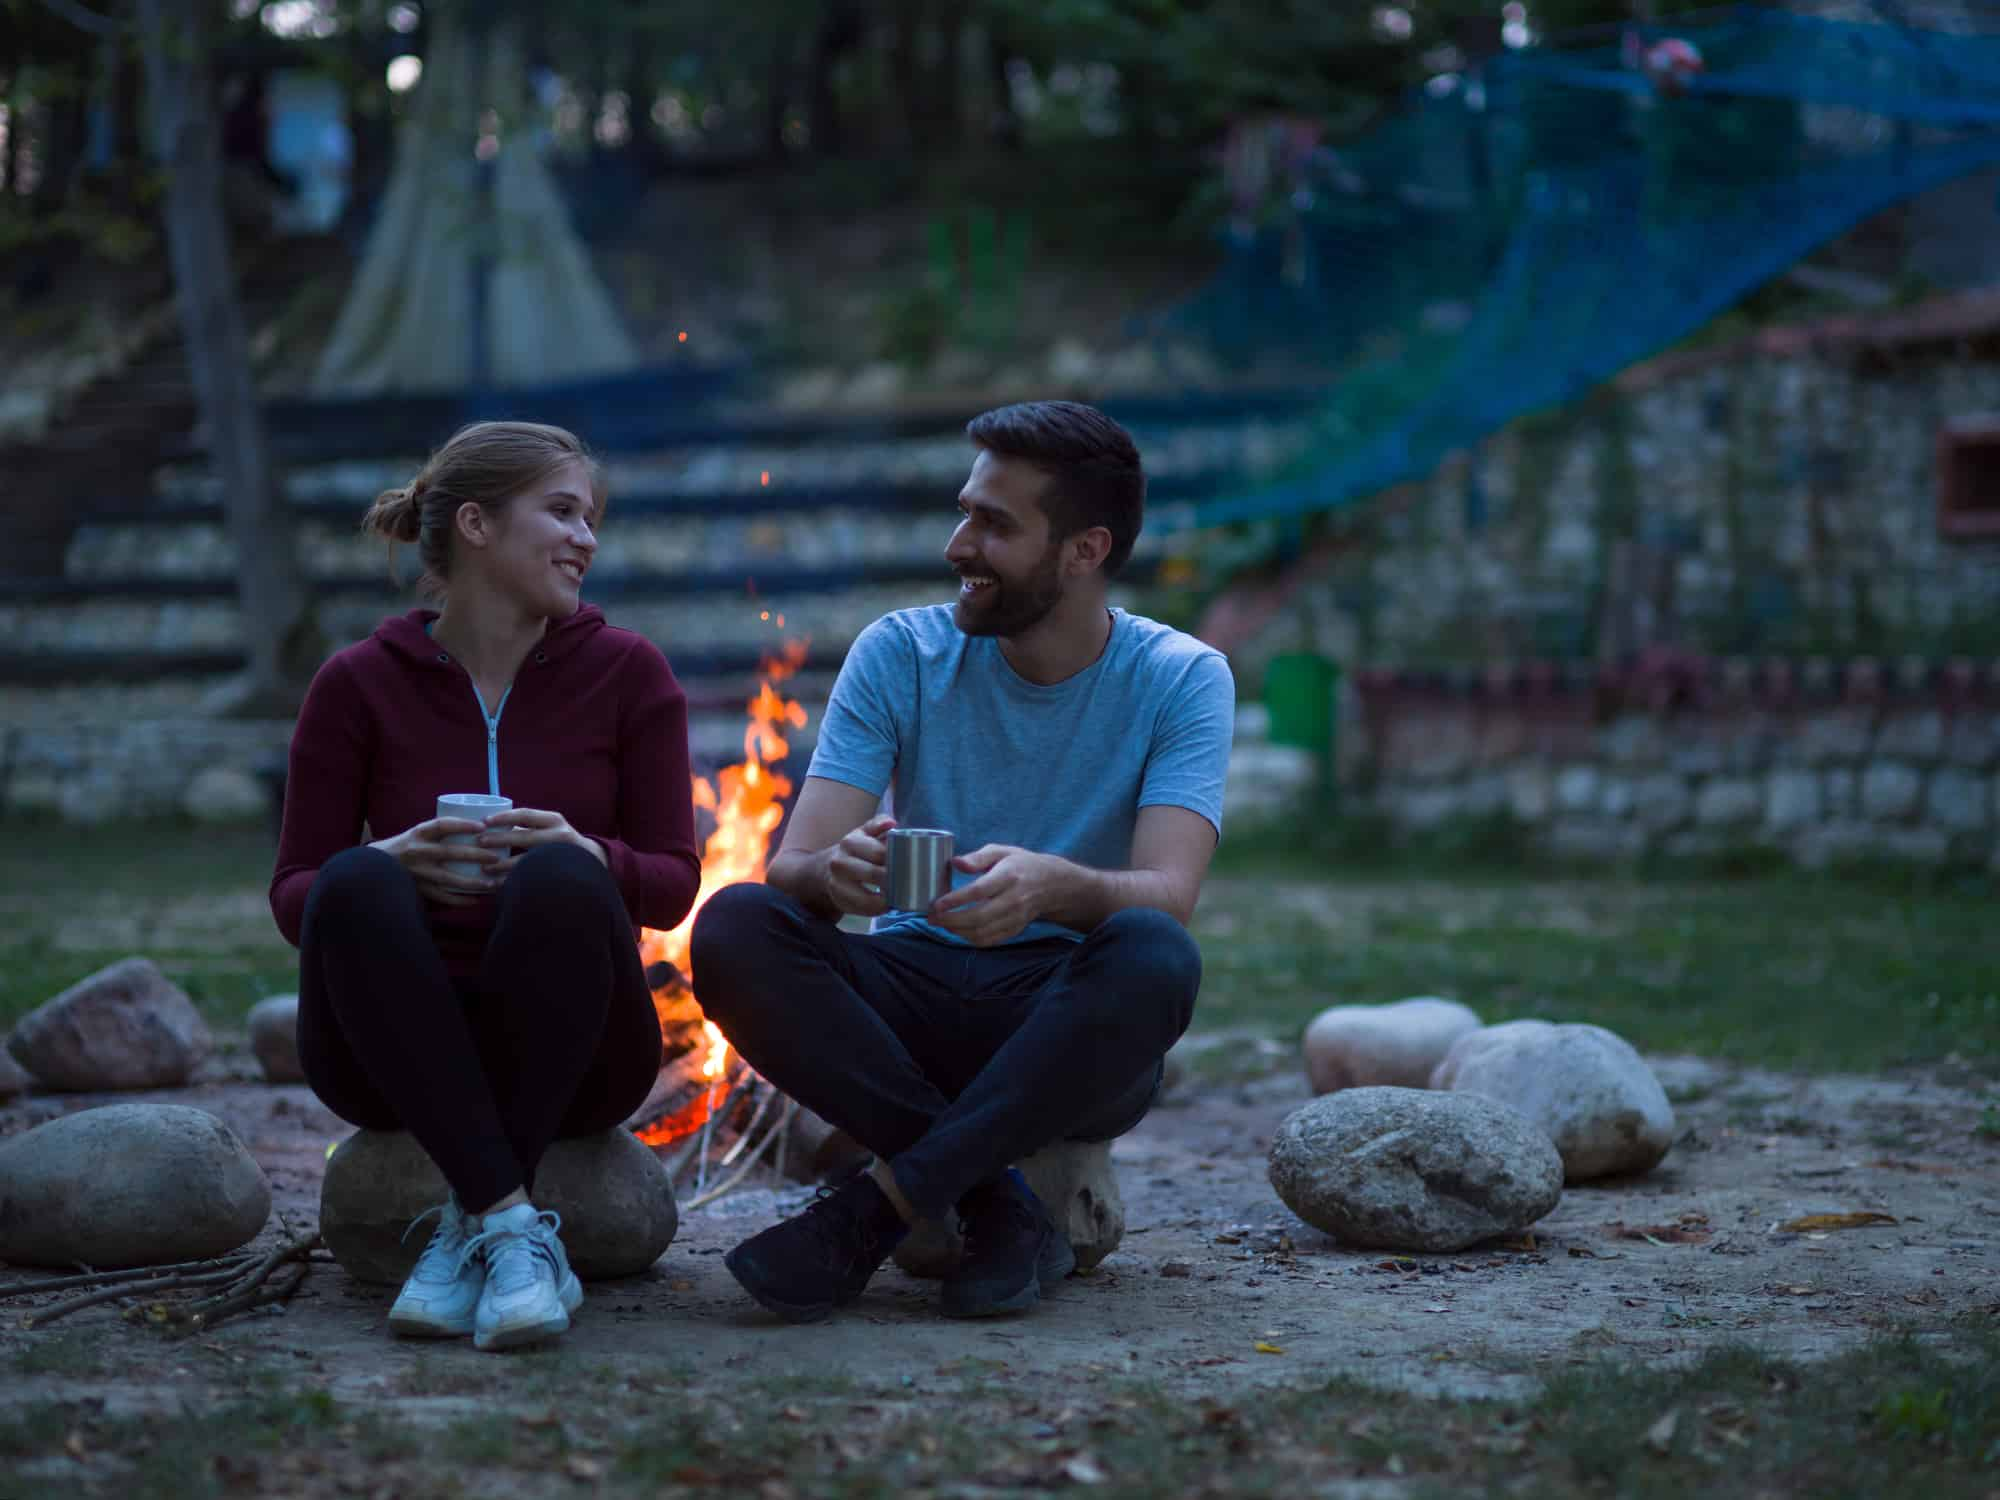 young couple enjoying an outdoor date night at home